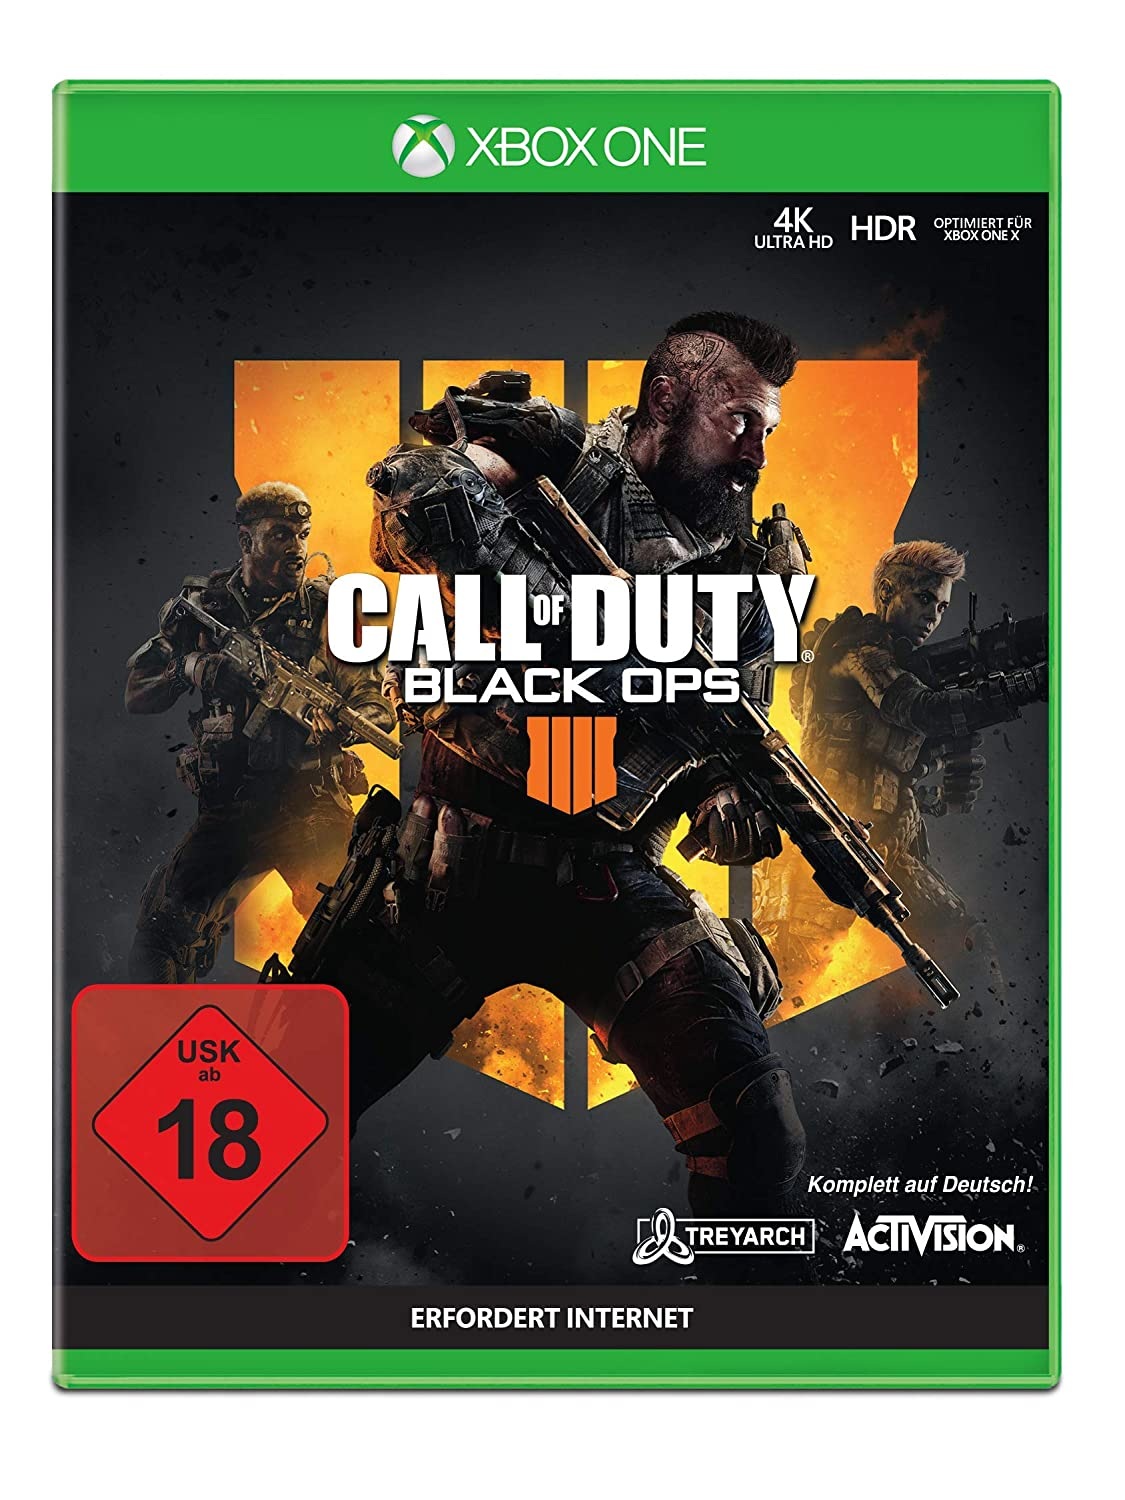 [amazon.de] Call of Duty Black Ops 4 Xbox One um 12,09€ anstatt 22,38€